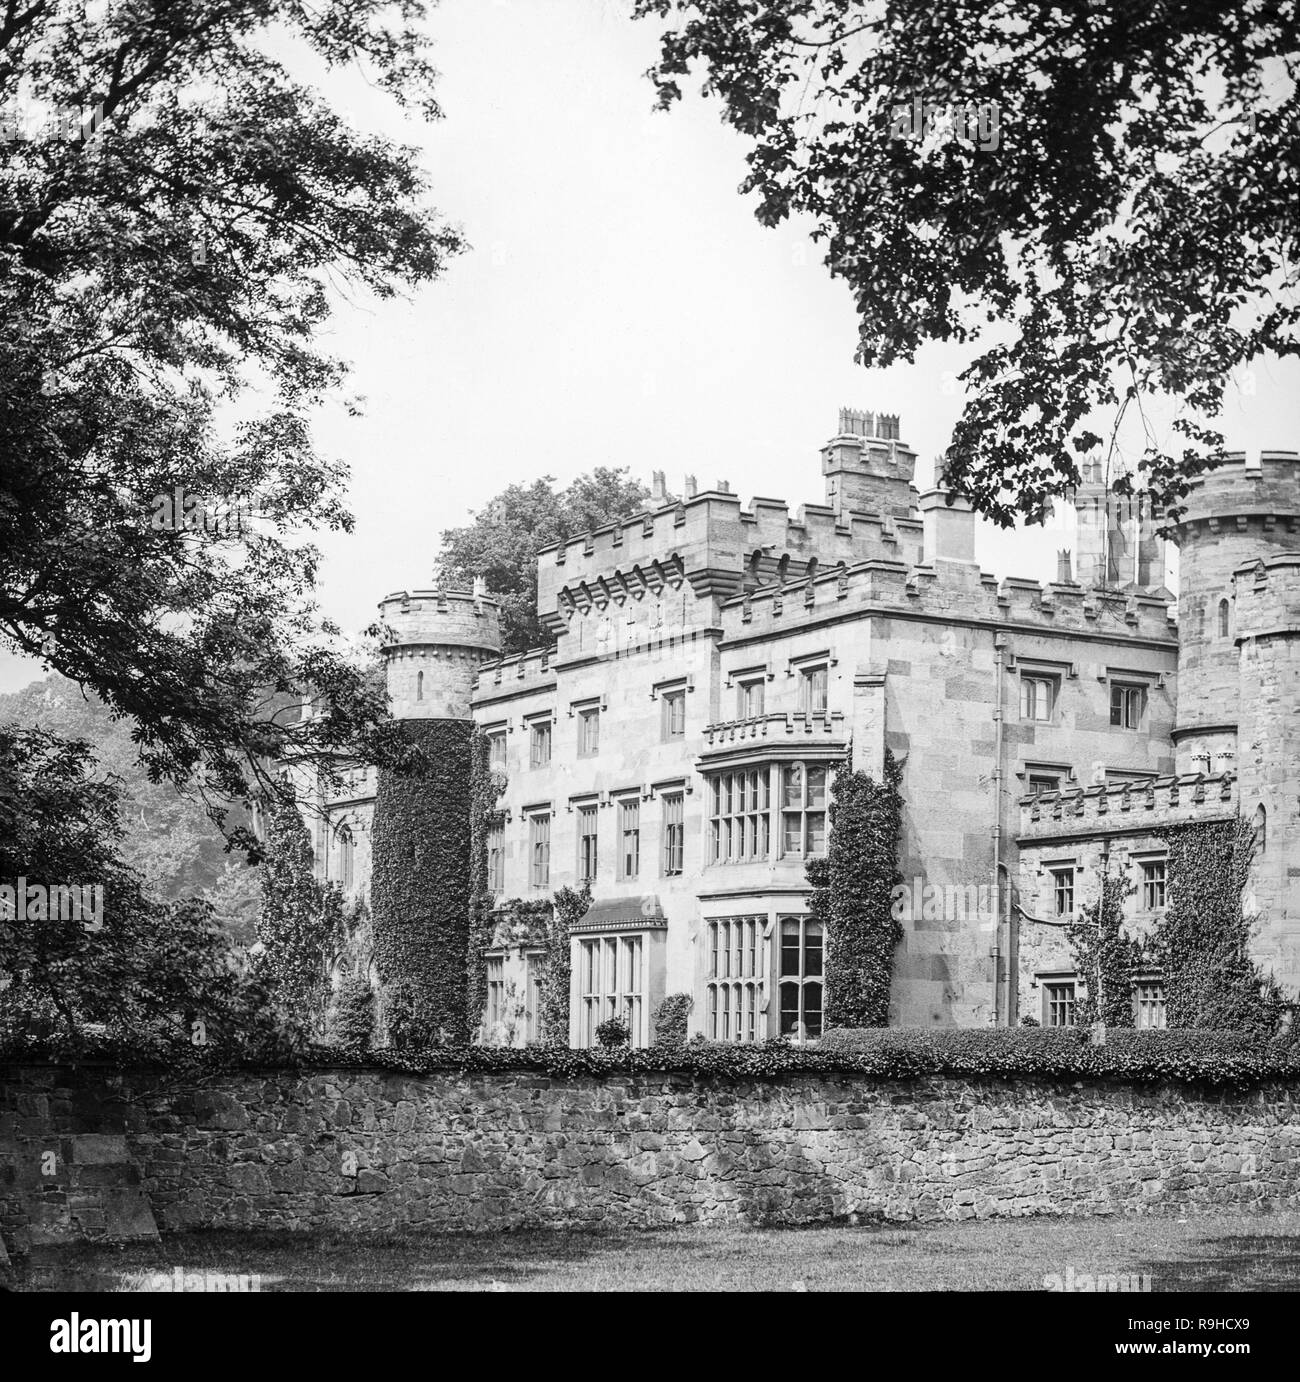 An Early Twentieth Century Photograph Of Hawarden Castle And House In Flintshire Wales It Was The Estate Of The Former British Prime Minister William